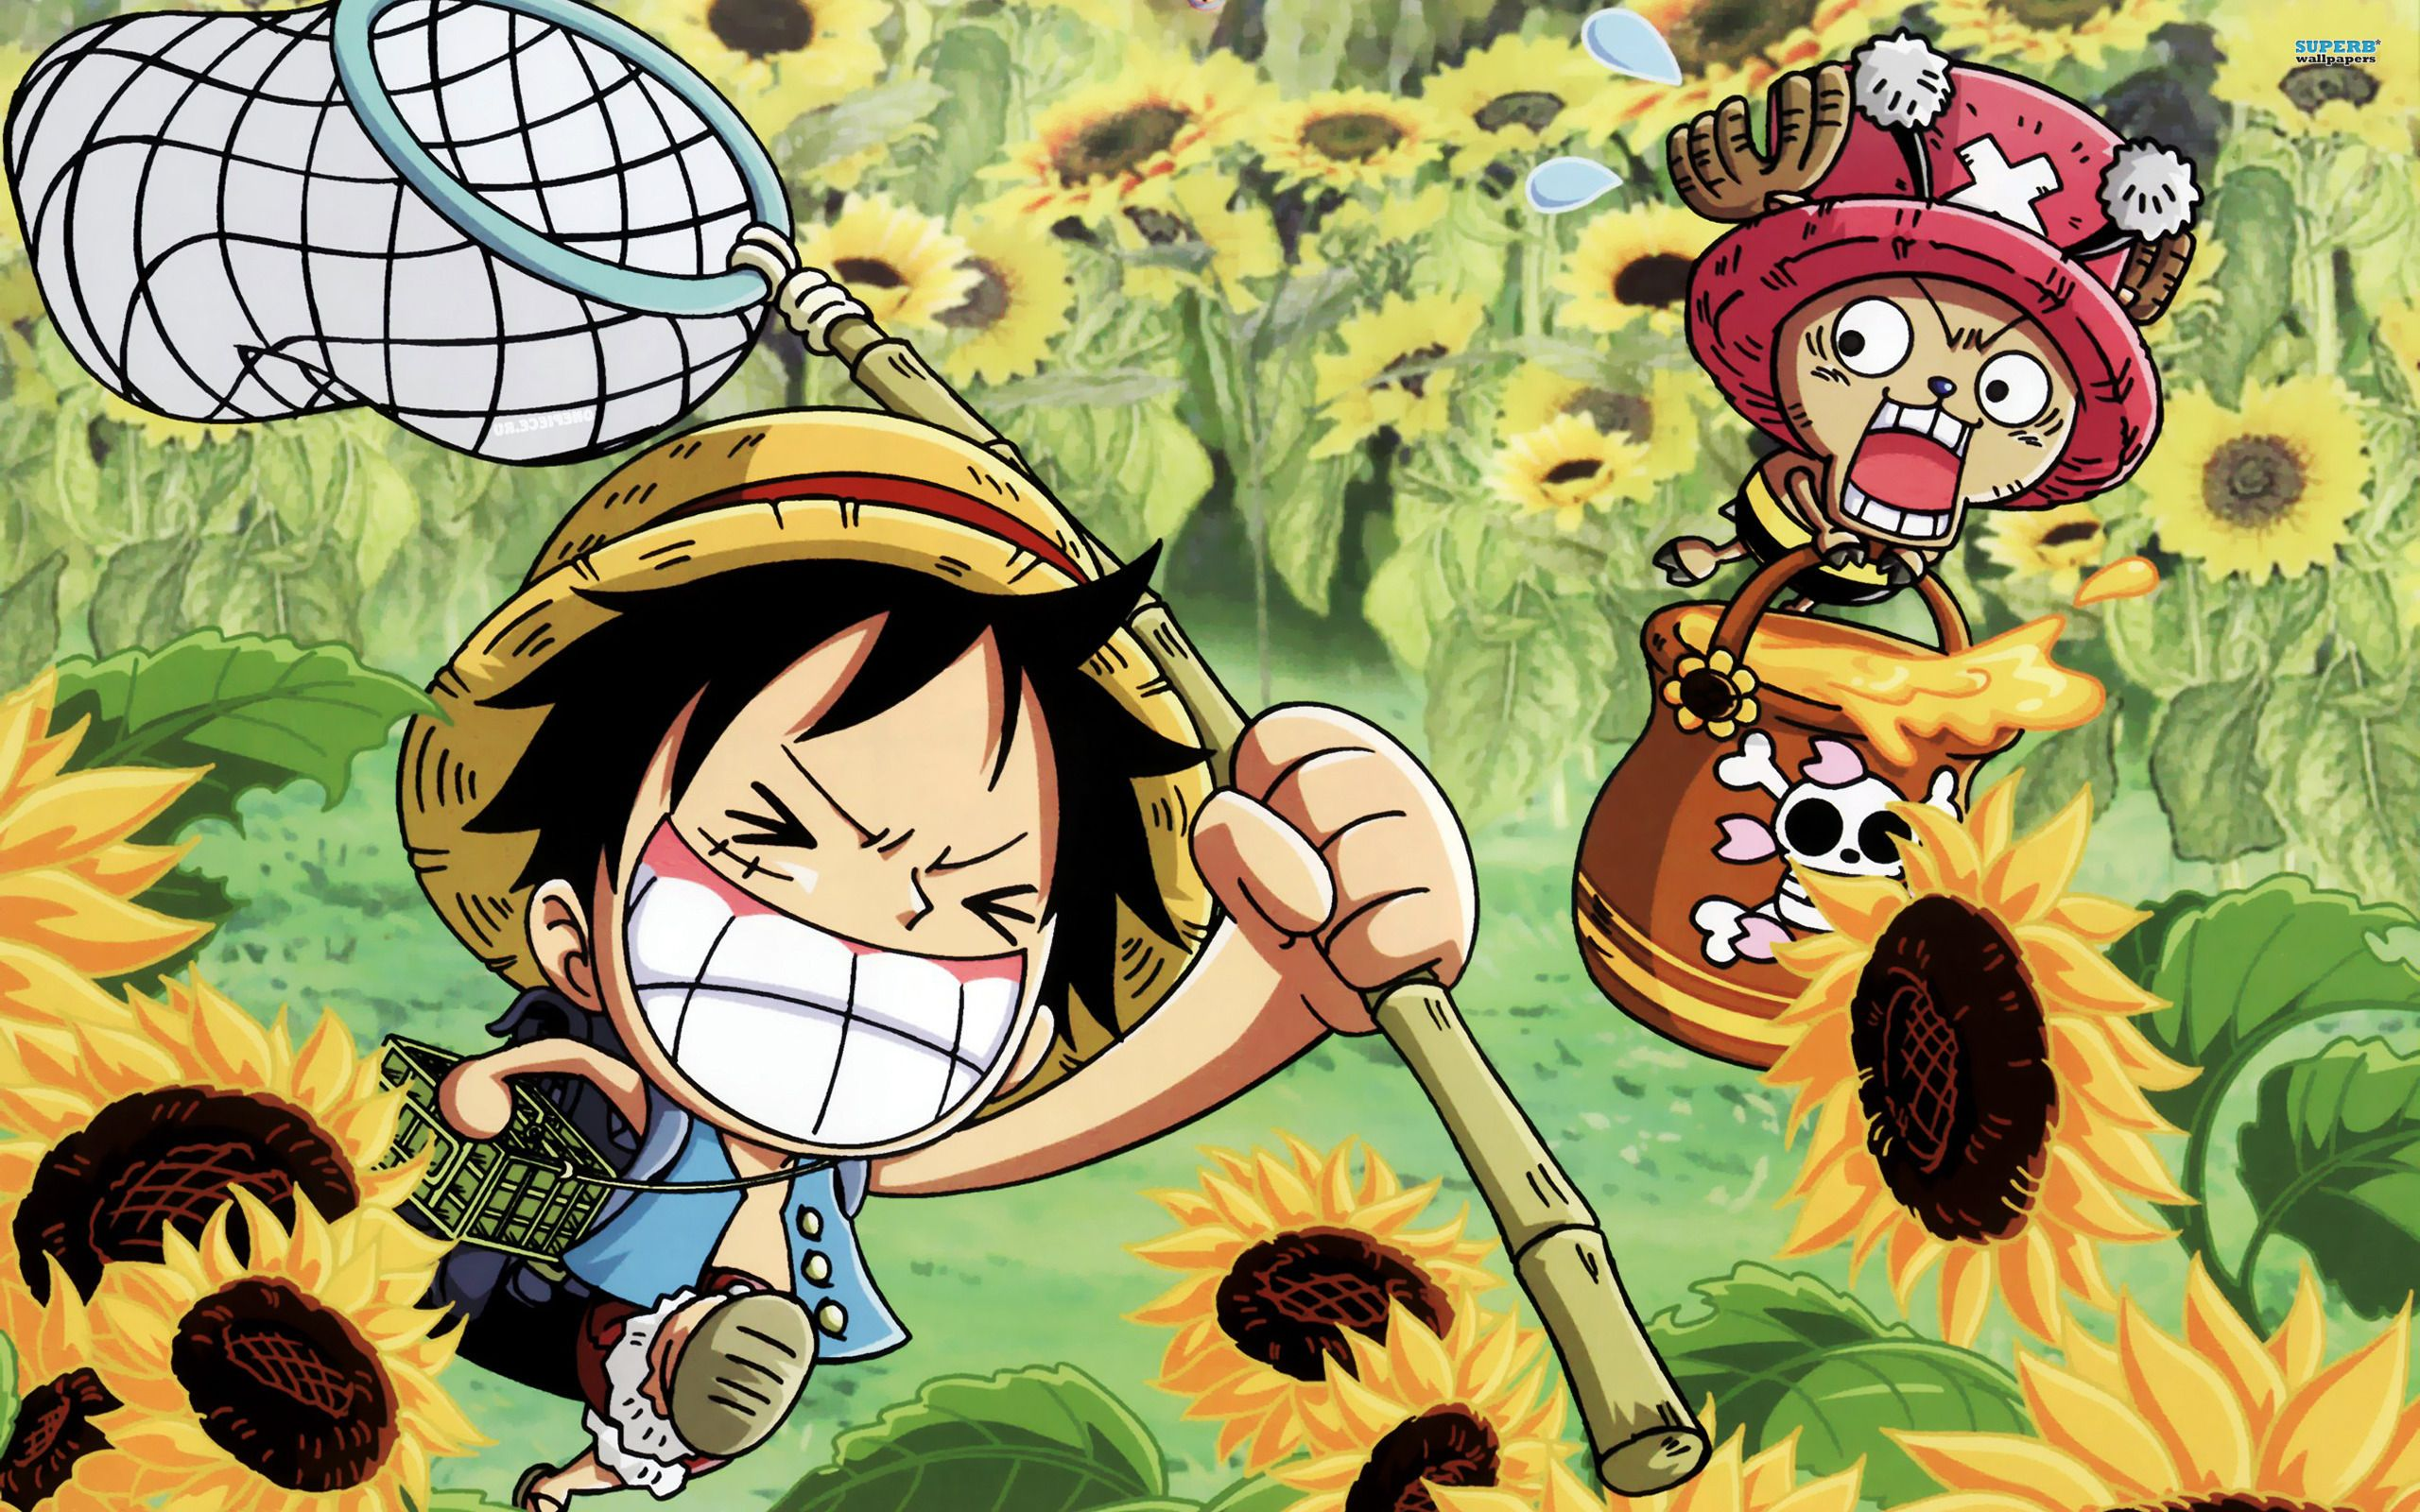 One piece background hd b t u pinterest hd - One piece wallpaper hd for android ...